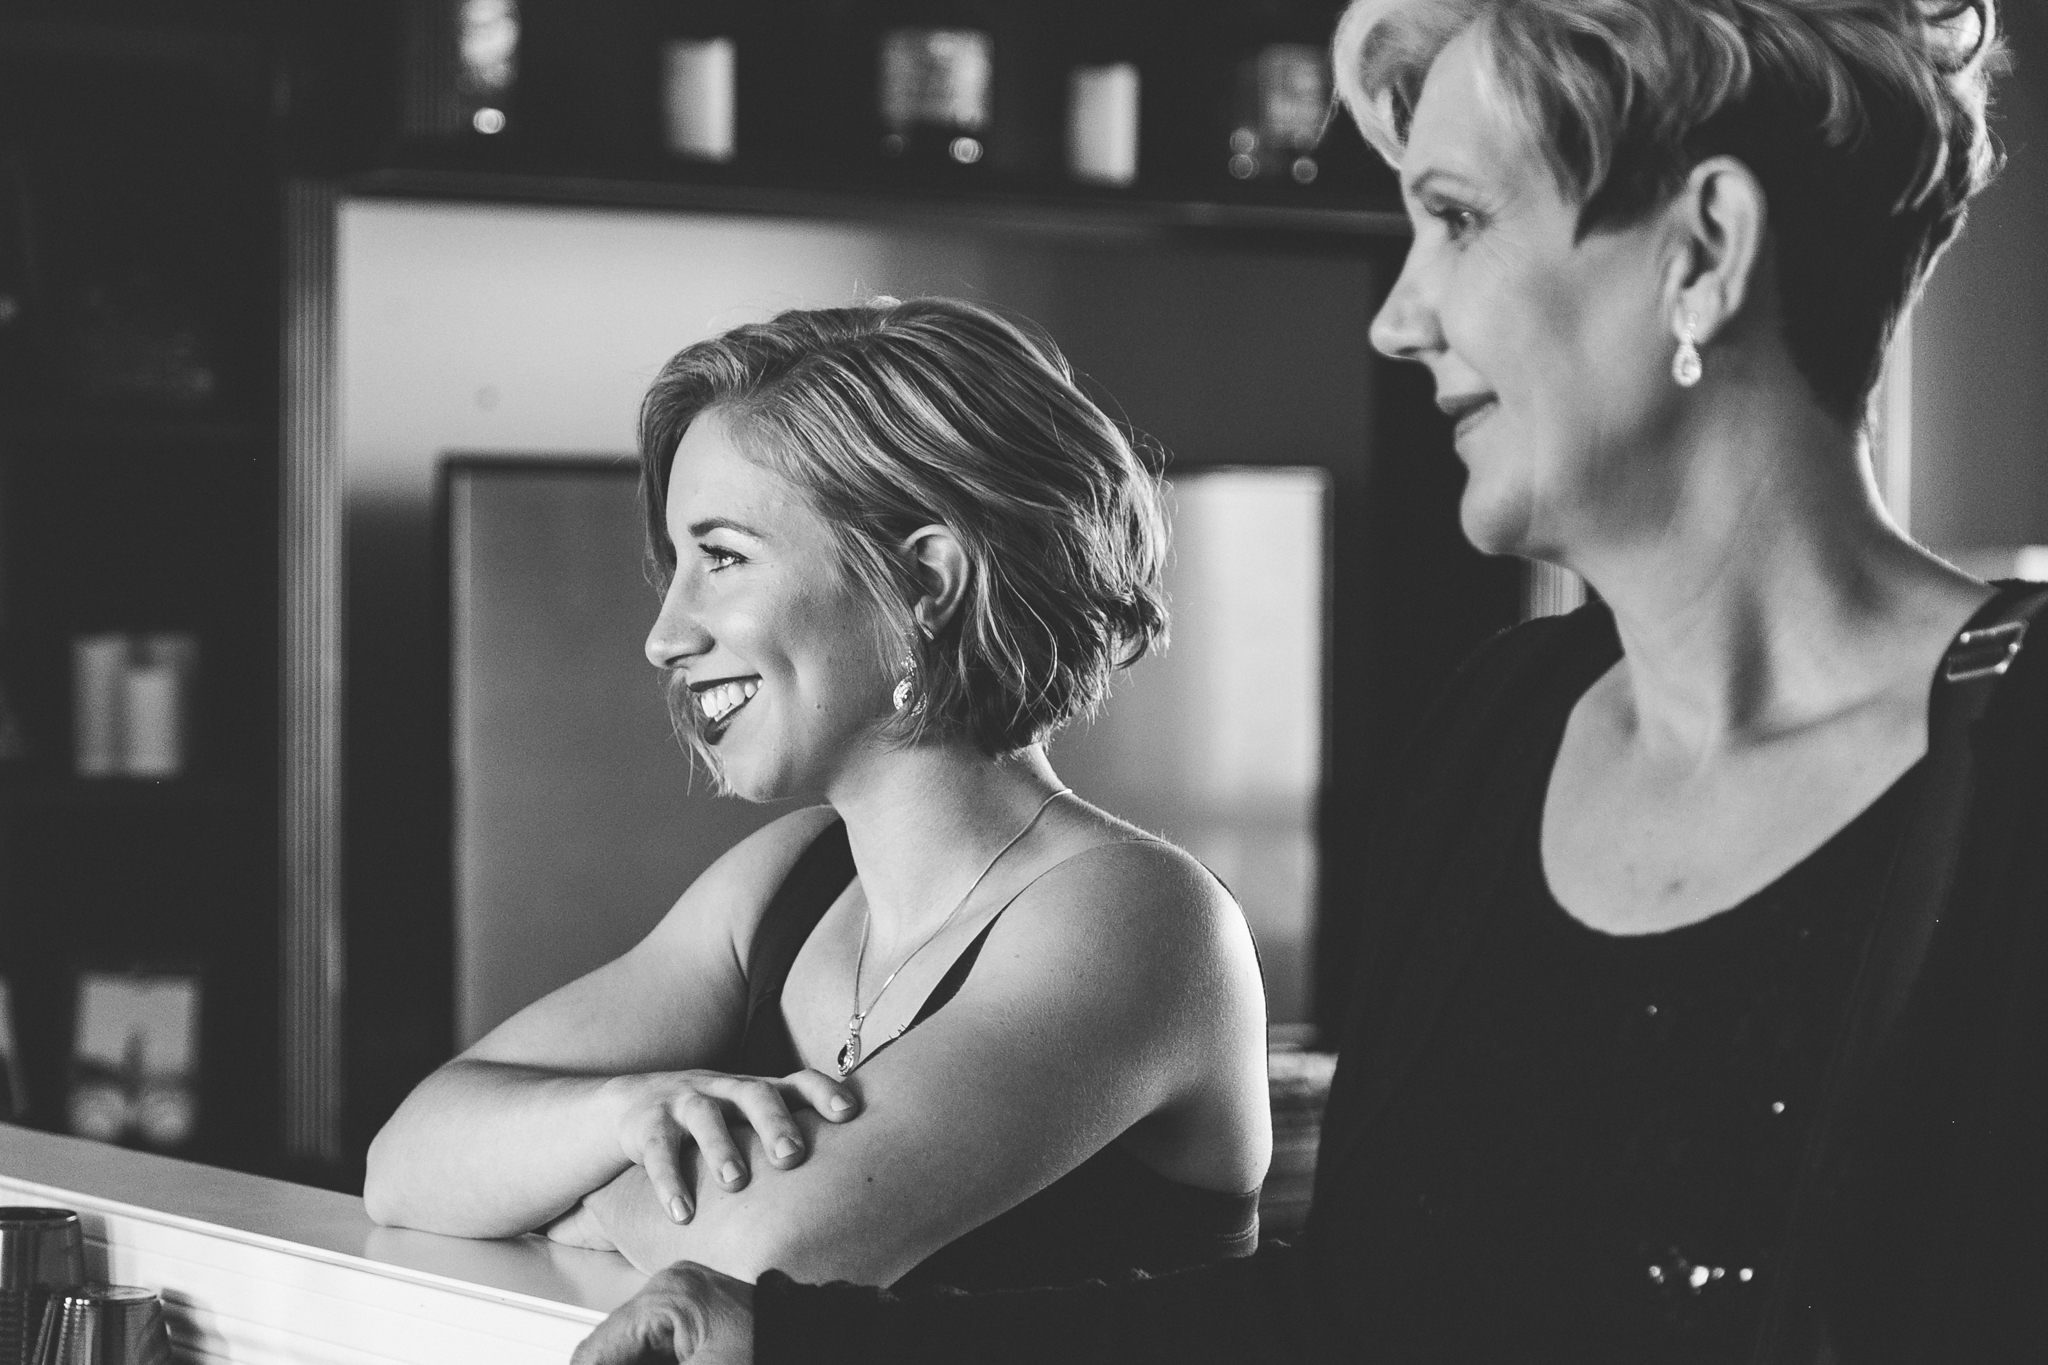 lethbridge-wedding-photographer-love-and-be-loved-photography-bride-prep-photo-image-picture-13.jpg